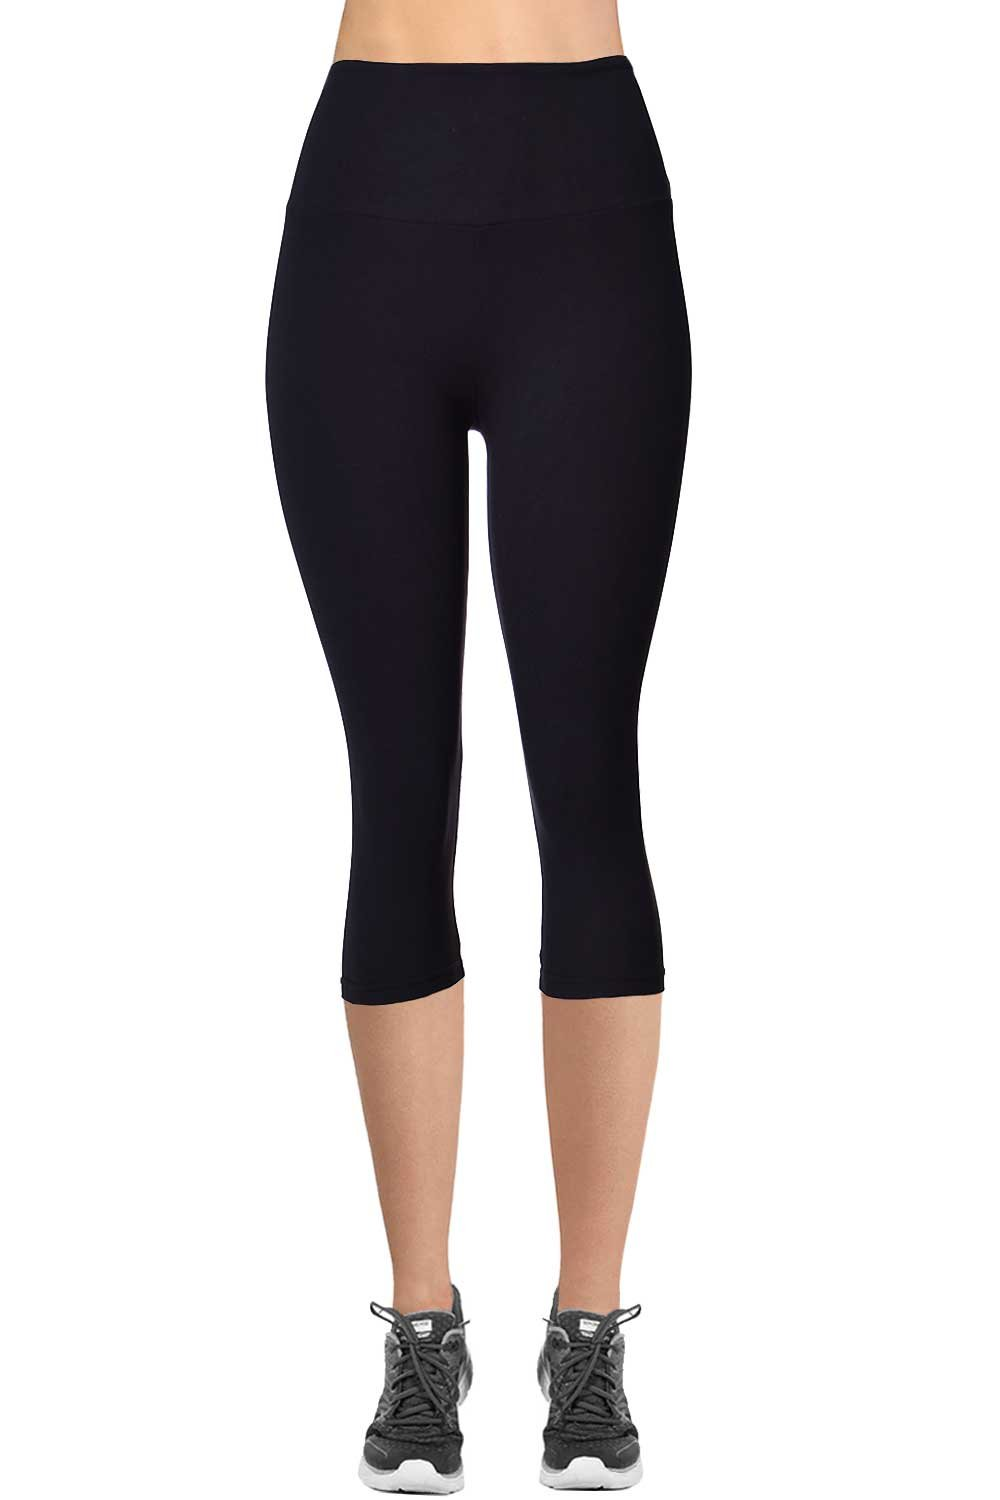 VIV Collection Signature Capri Leggings Soft and No Pocket (XL, Black)